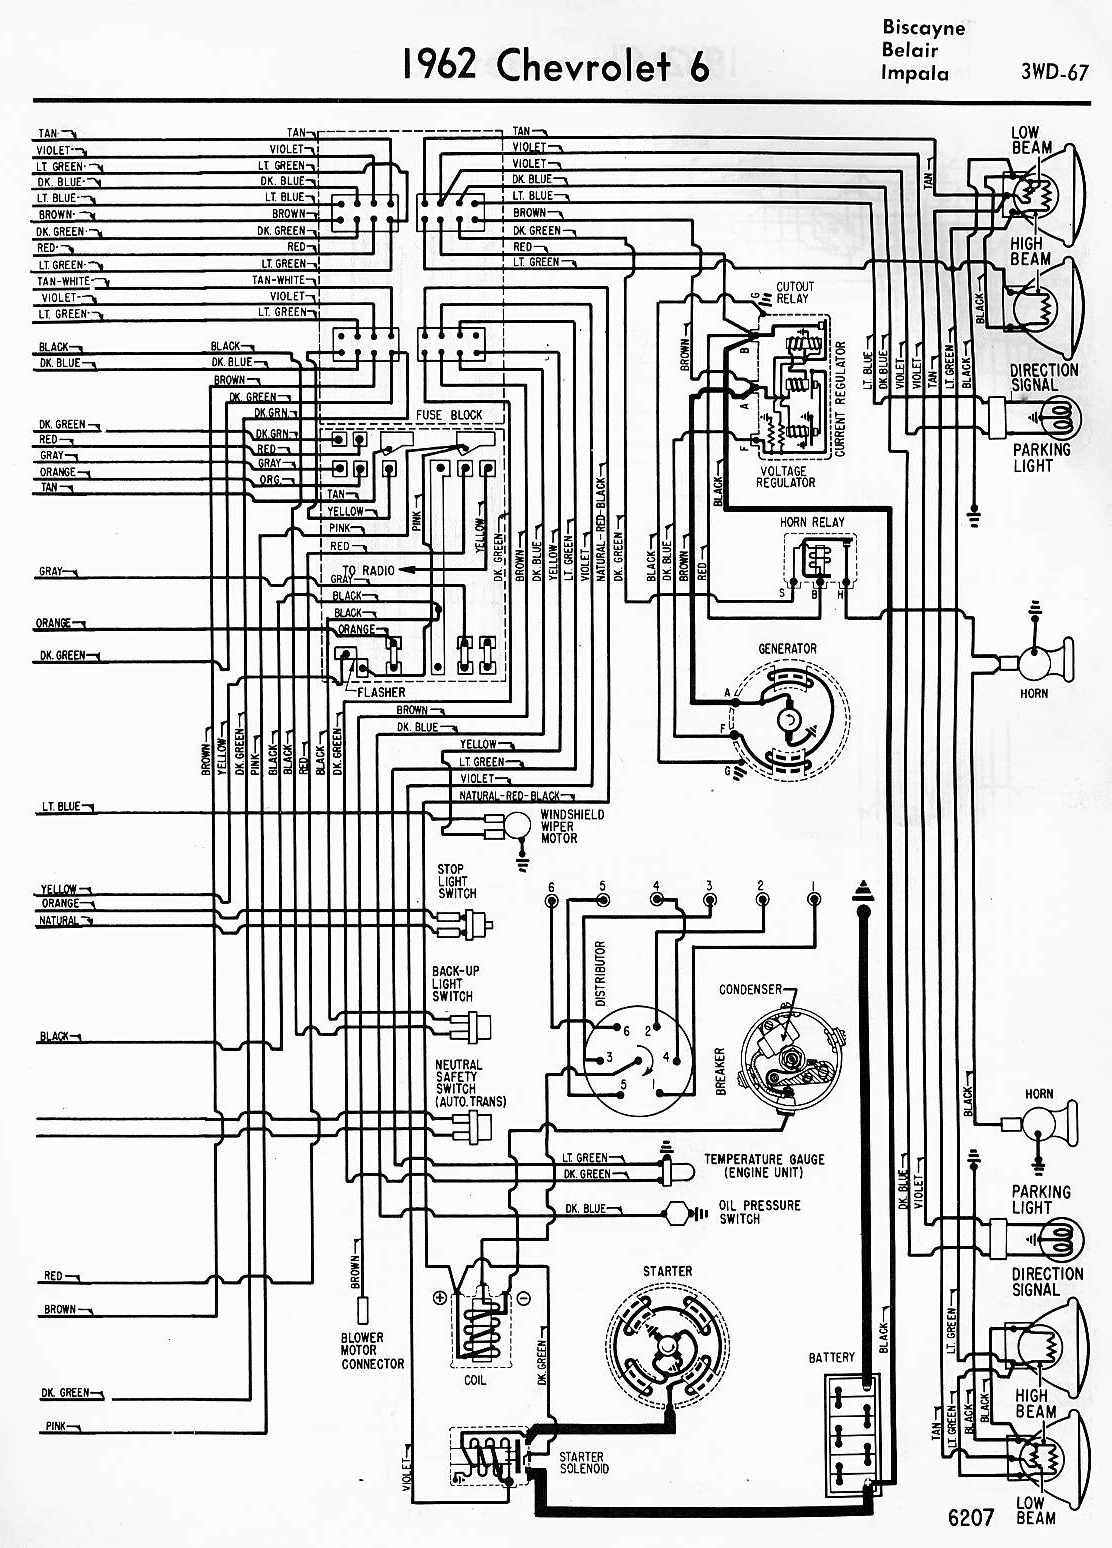 medium resolution of 1963 impala headlight switch diagram www topsimages com 2004 chevy impala parts diagram inside diagram 1963